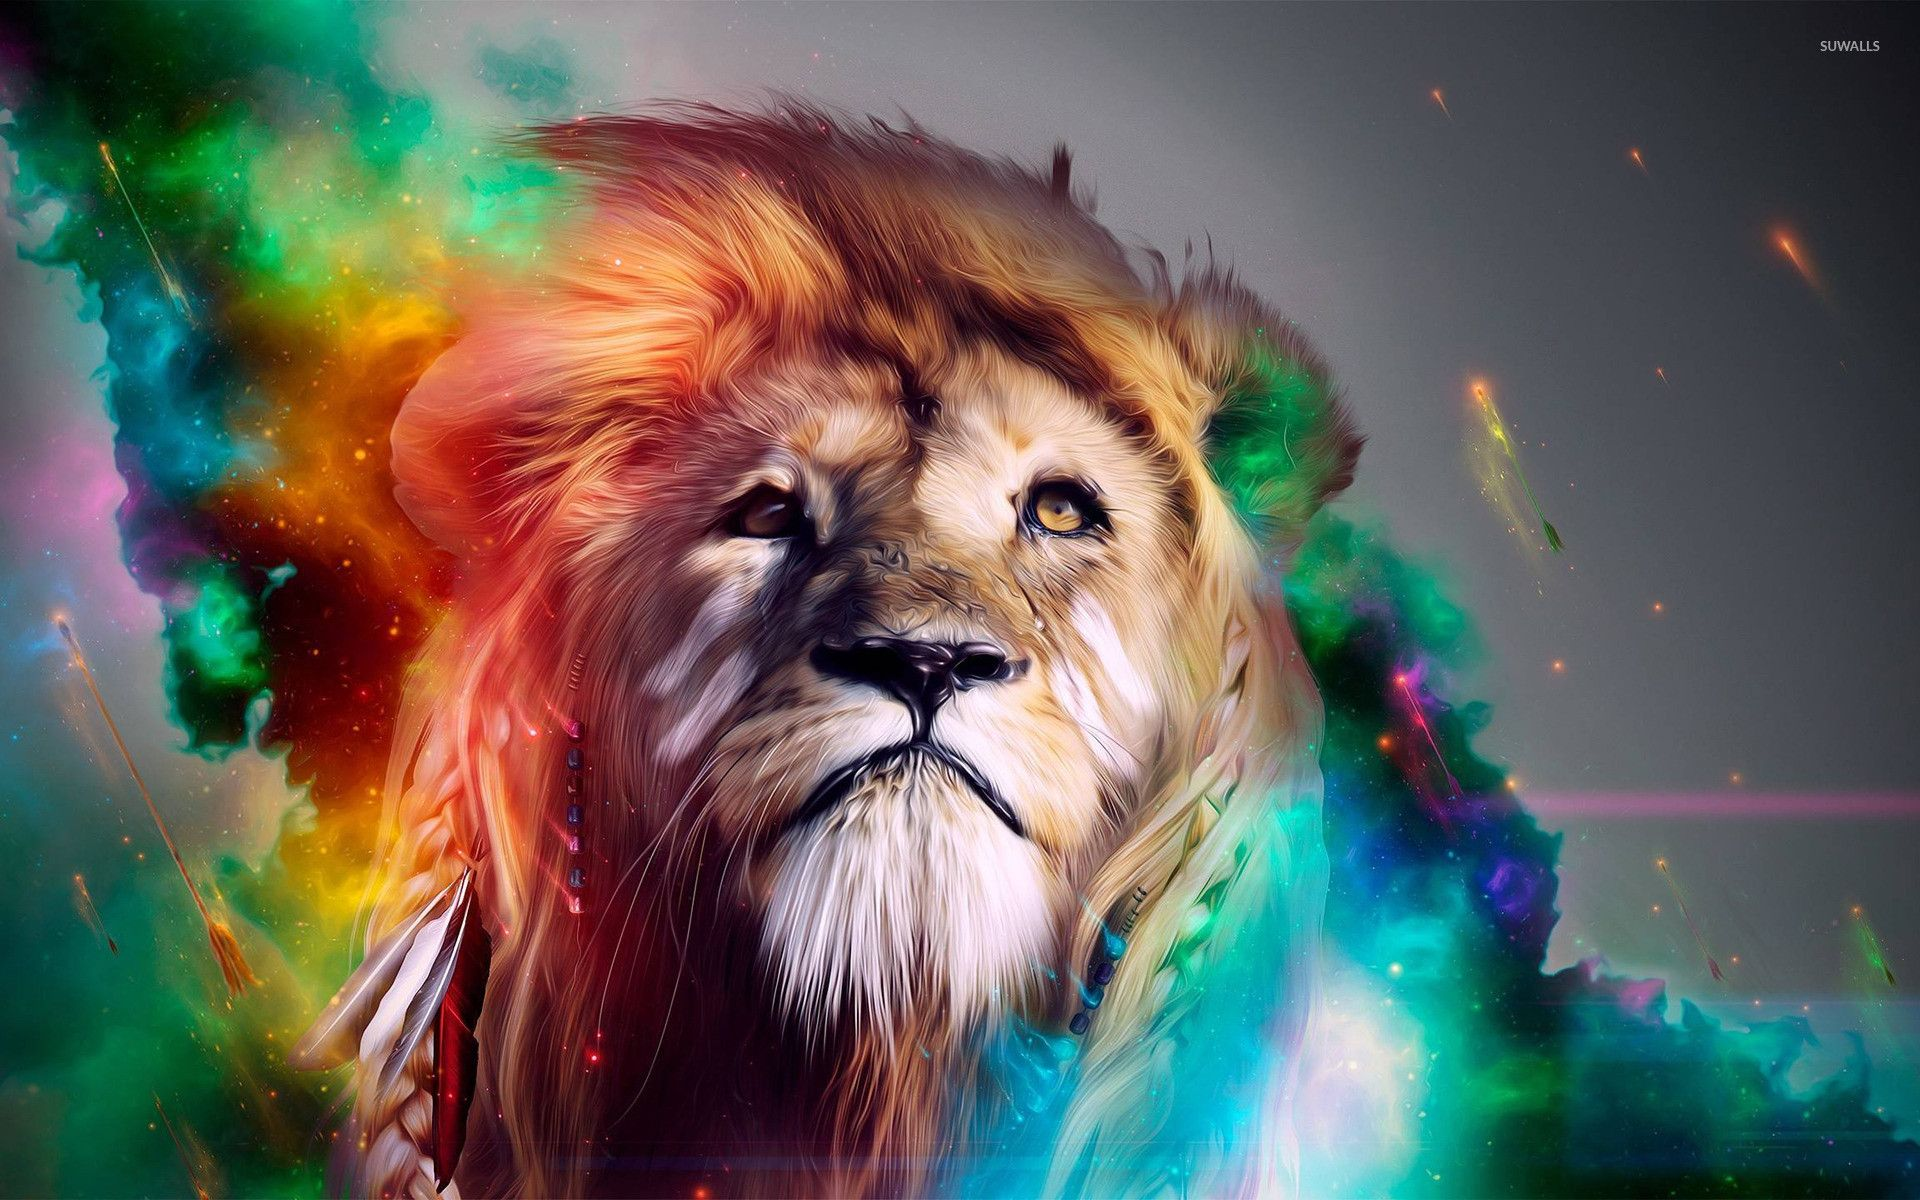 Abstract Lion Wallpapers Top Free Abstract Lion Backgrounds Wallpaperaccess